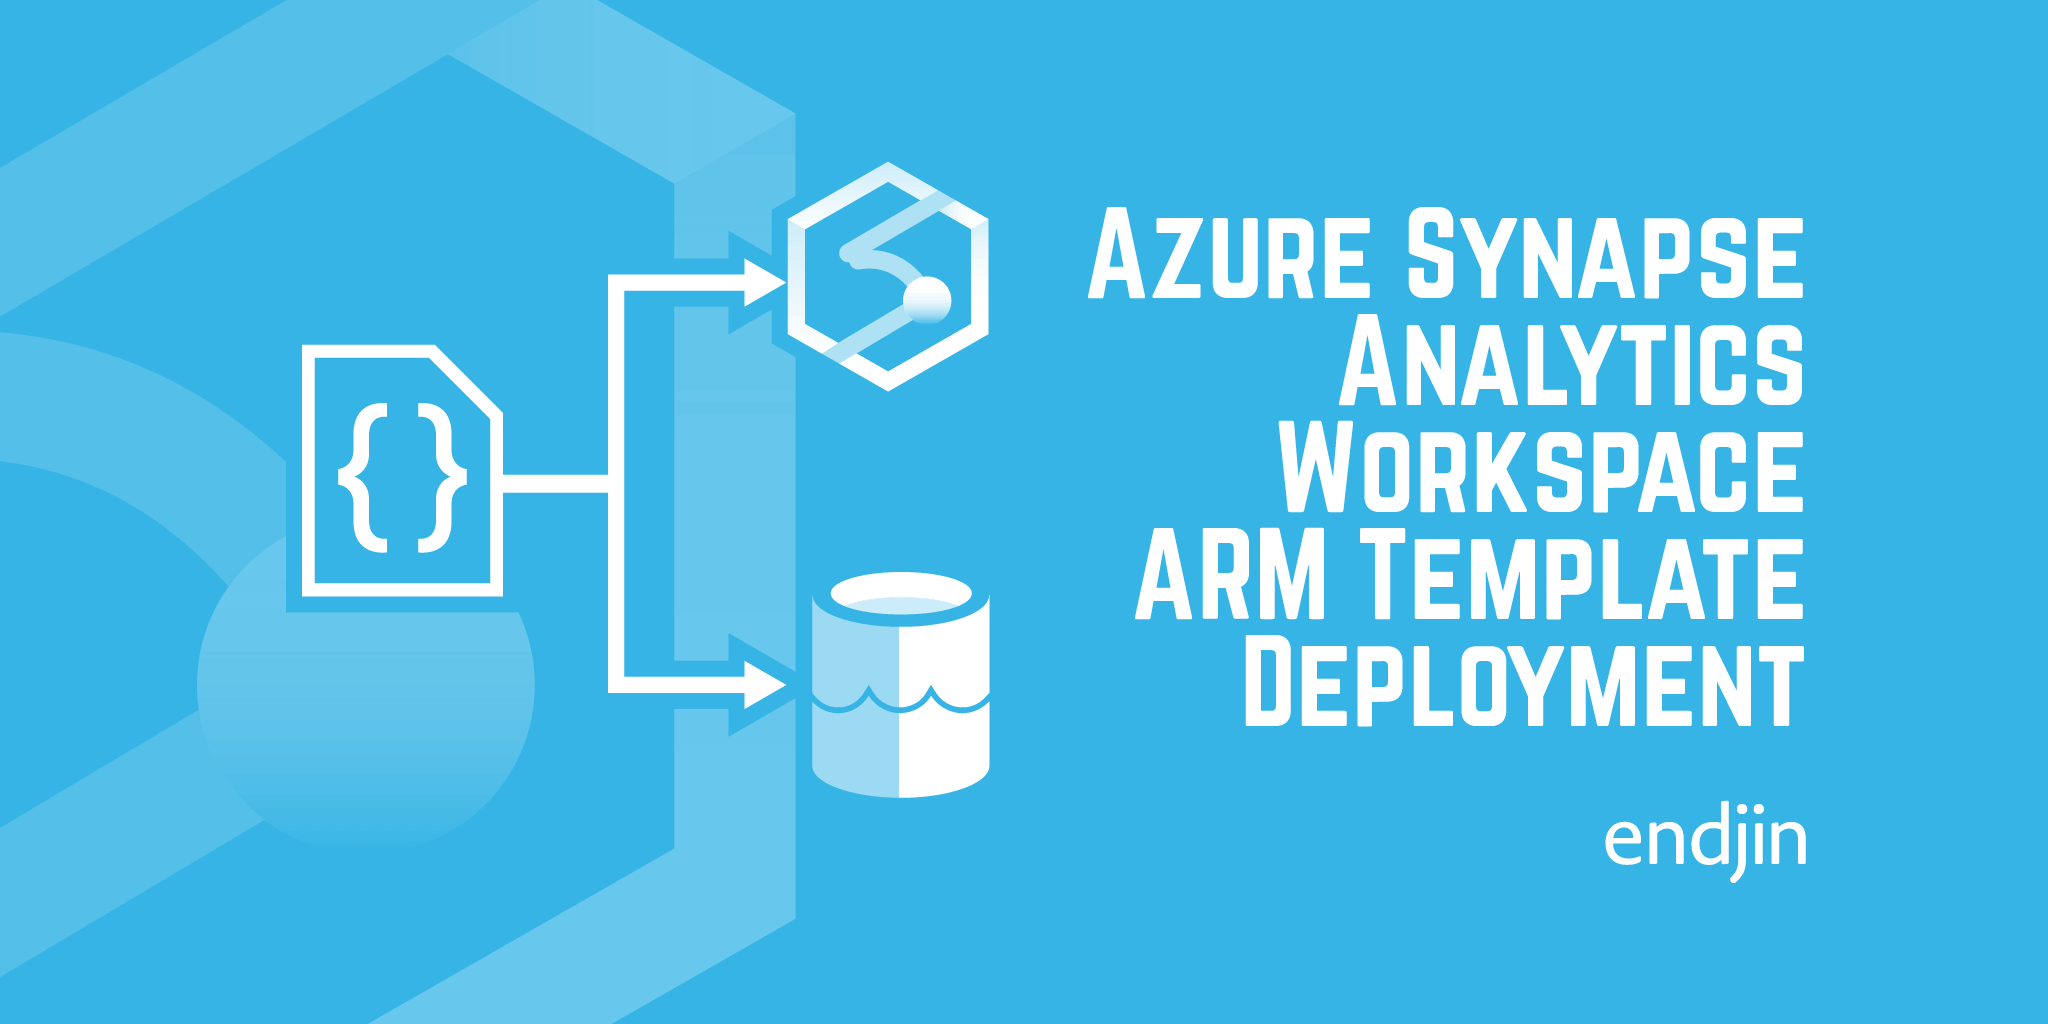 Deploy an Azure Synapse Analytics workspace using an ARM Template